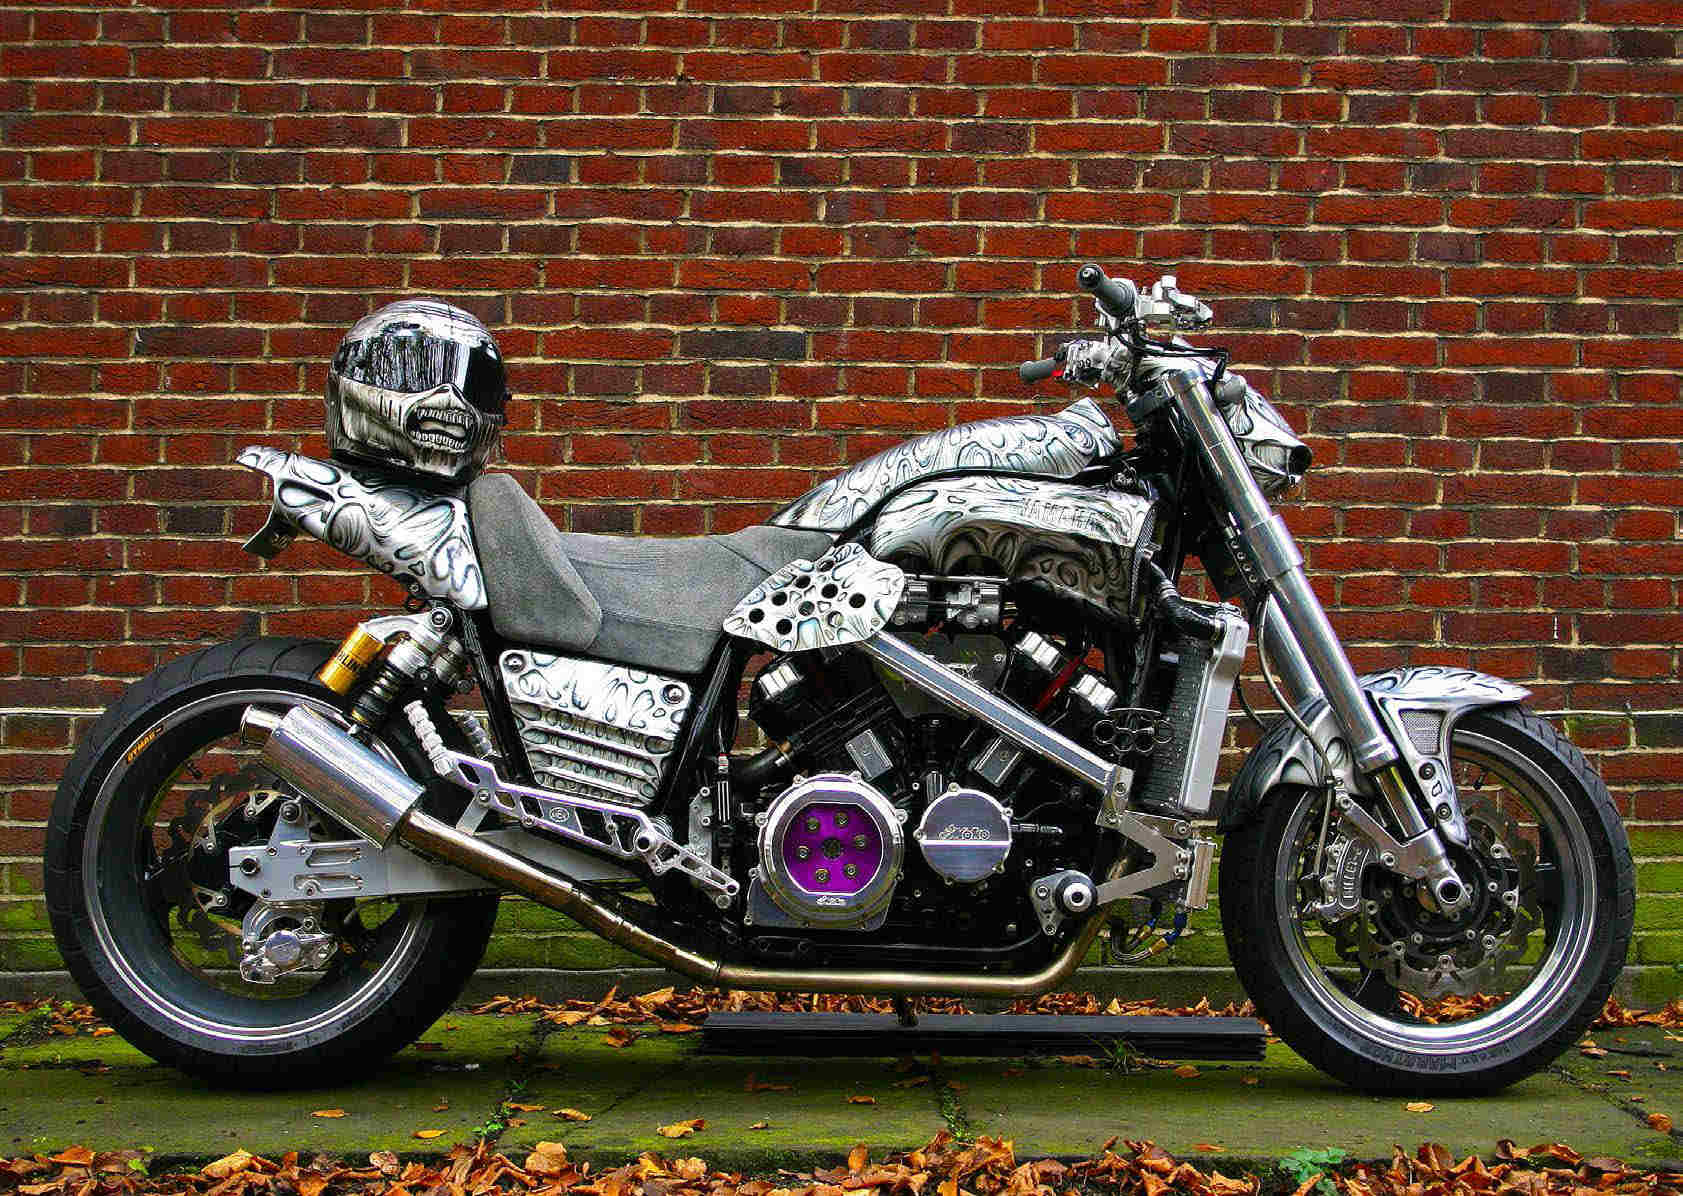 Iron Maiden's low rider motorcycle, with helmet on saddle, customised to suit their mascot Eddie the Head.